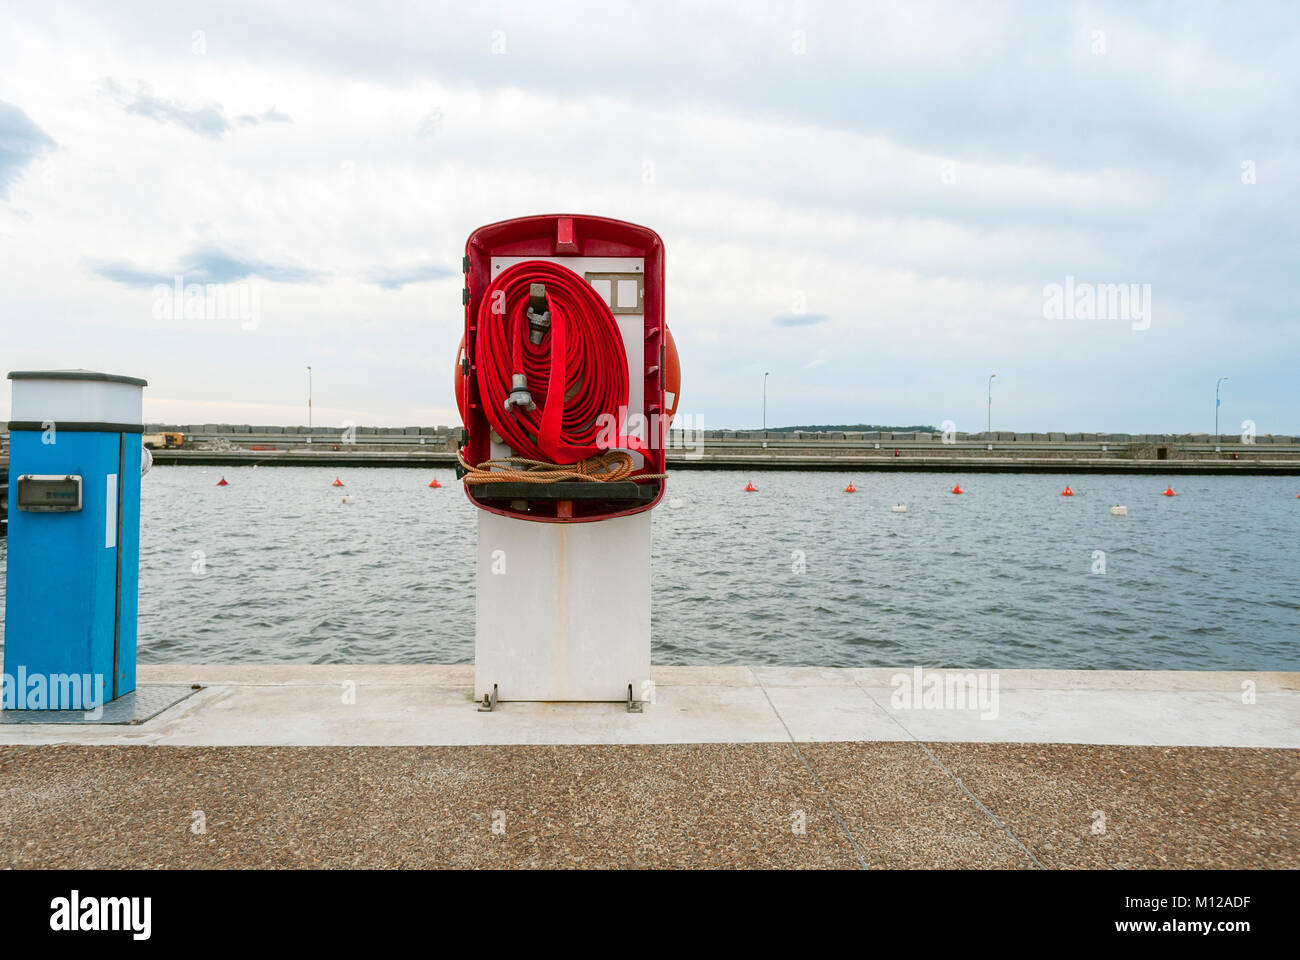 Firehose at Punta del este Port on cloudy day - Stock Image